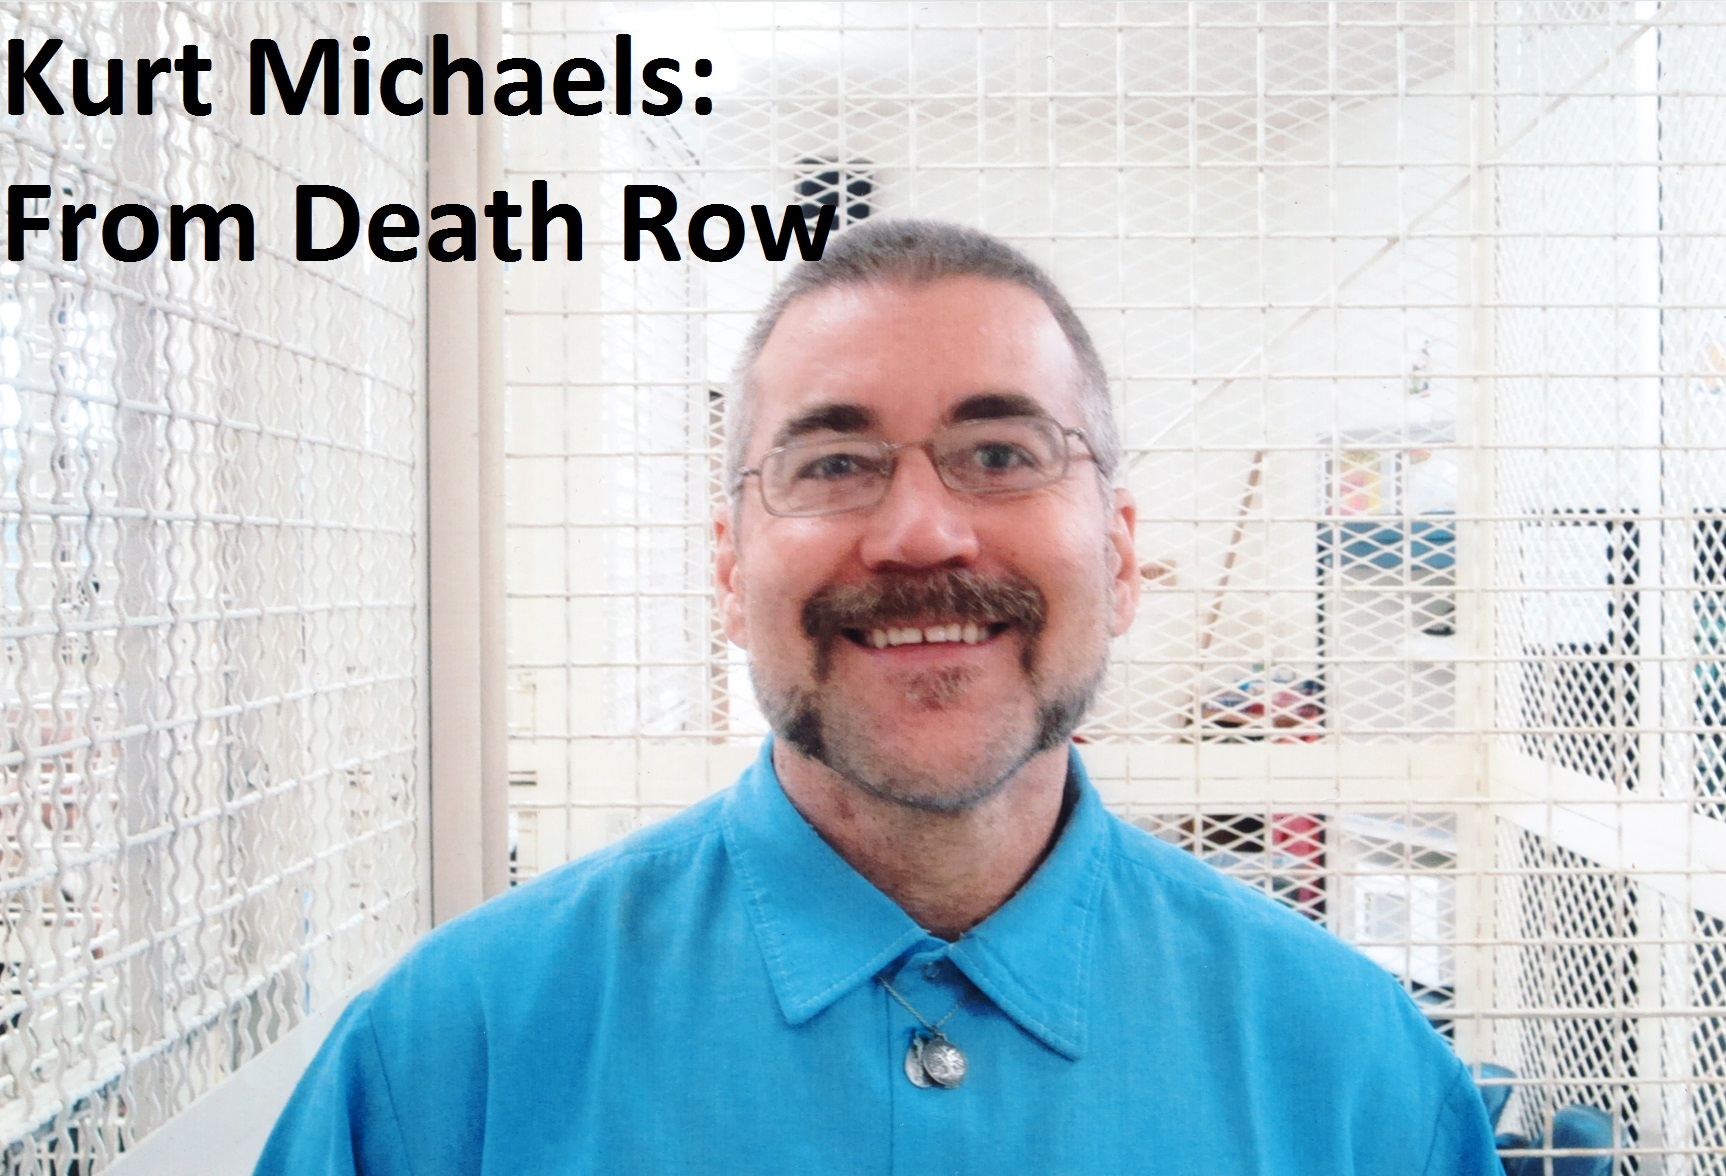 Kurt Michaels: From Death Row